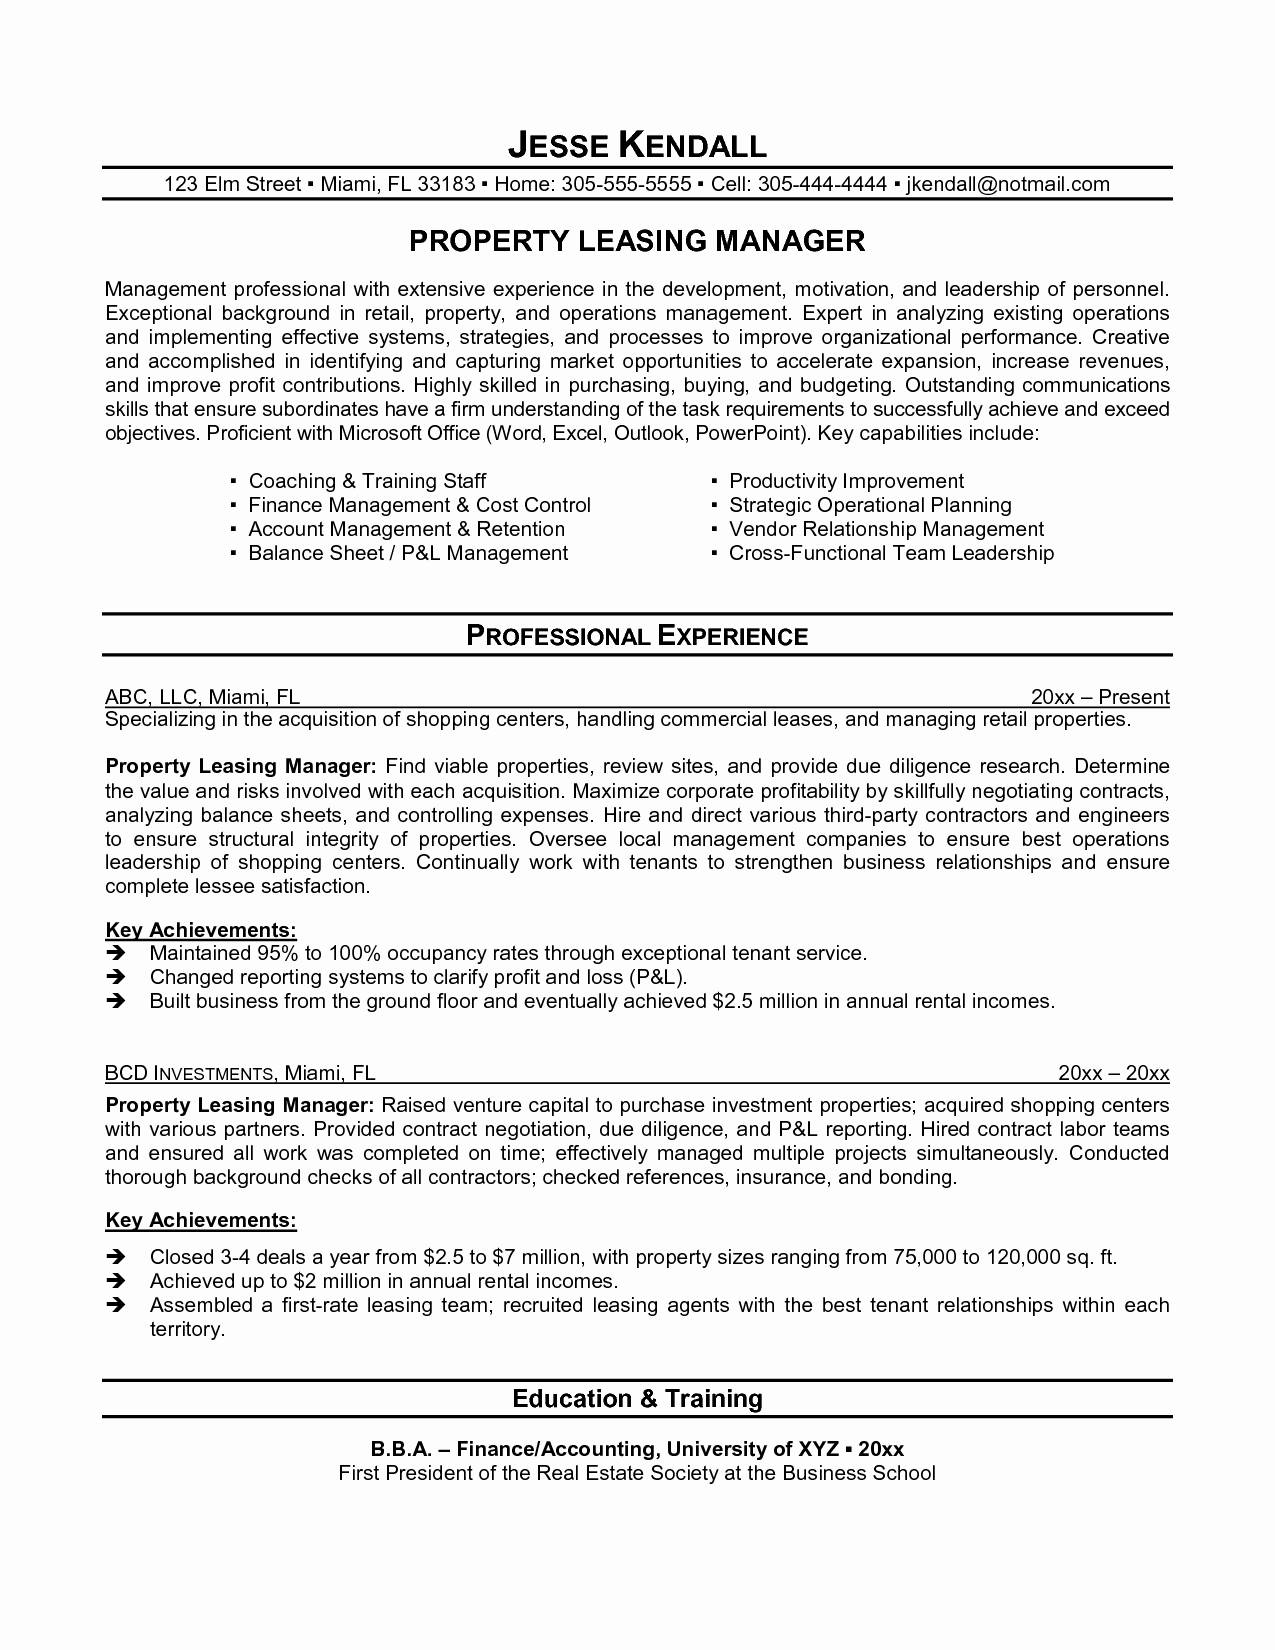 Insurance Contract Negotiation Letter Template - 15 Fresh Cover Letter Sample for Real Estate Job Resume Templates